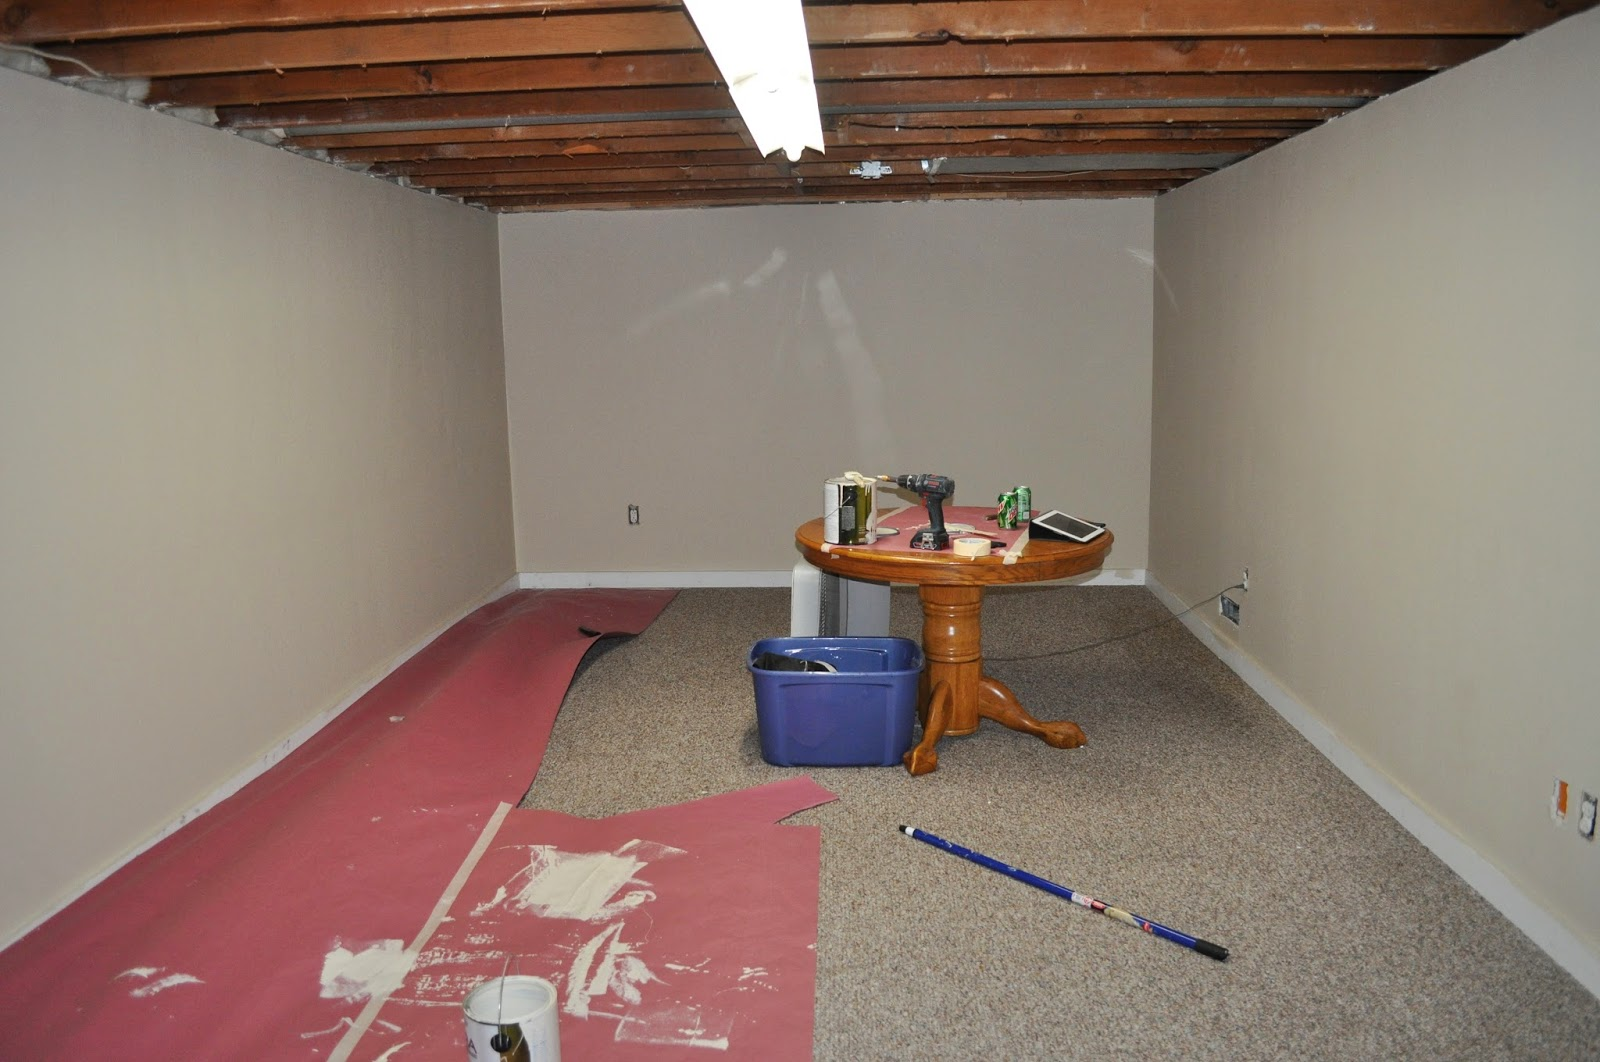 basement, menards, paint, organization, rec room, peel and stick tile, diy, basement project, finished basement